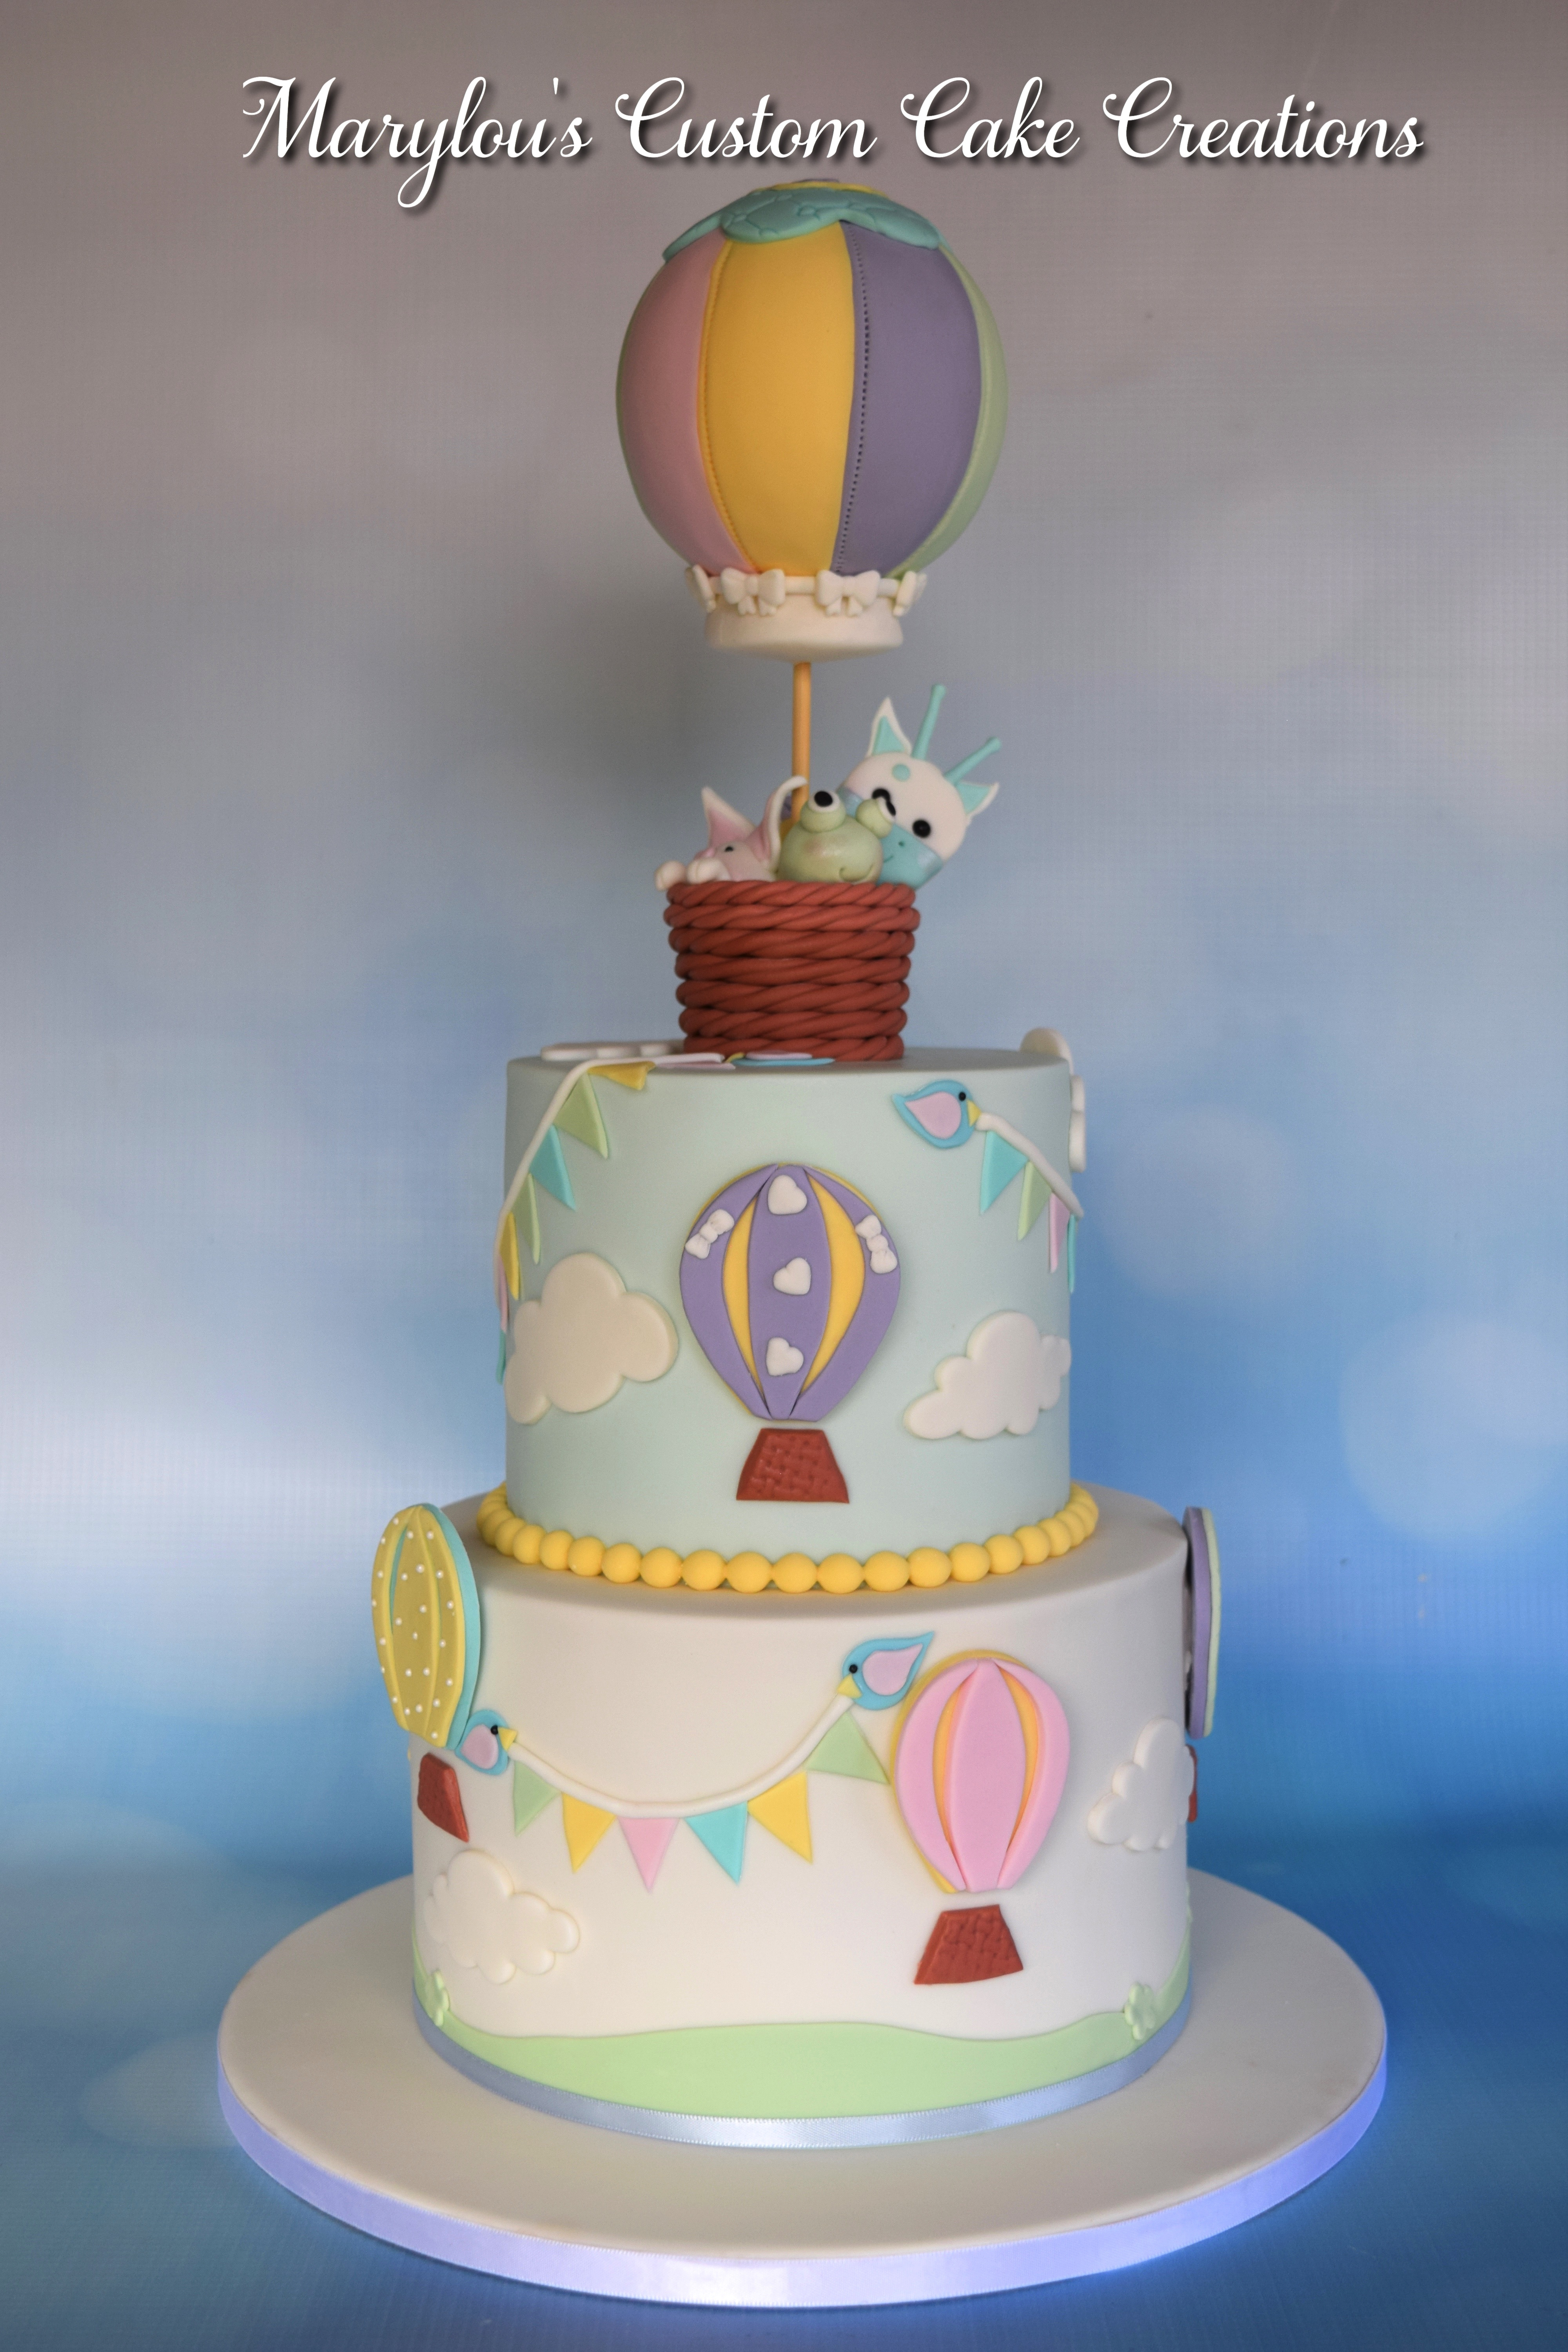 Marylou's Custom Cake Creations-5